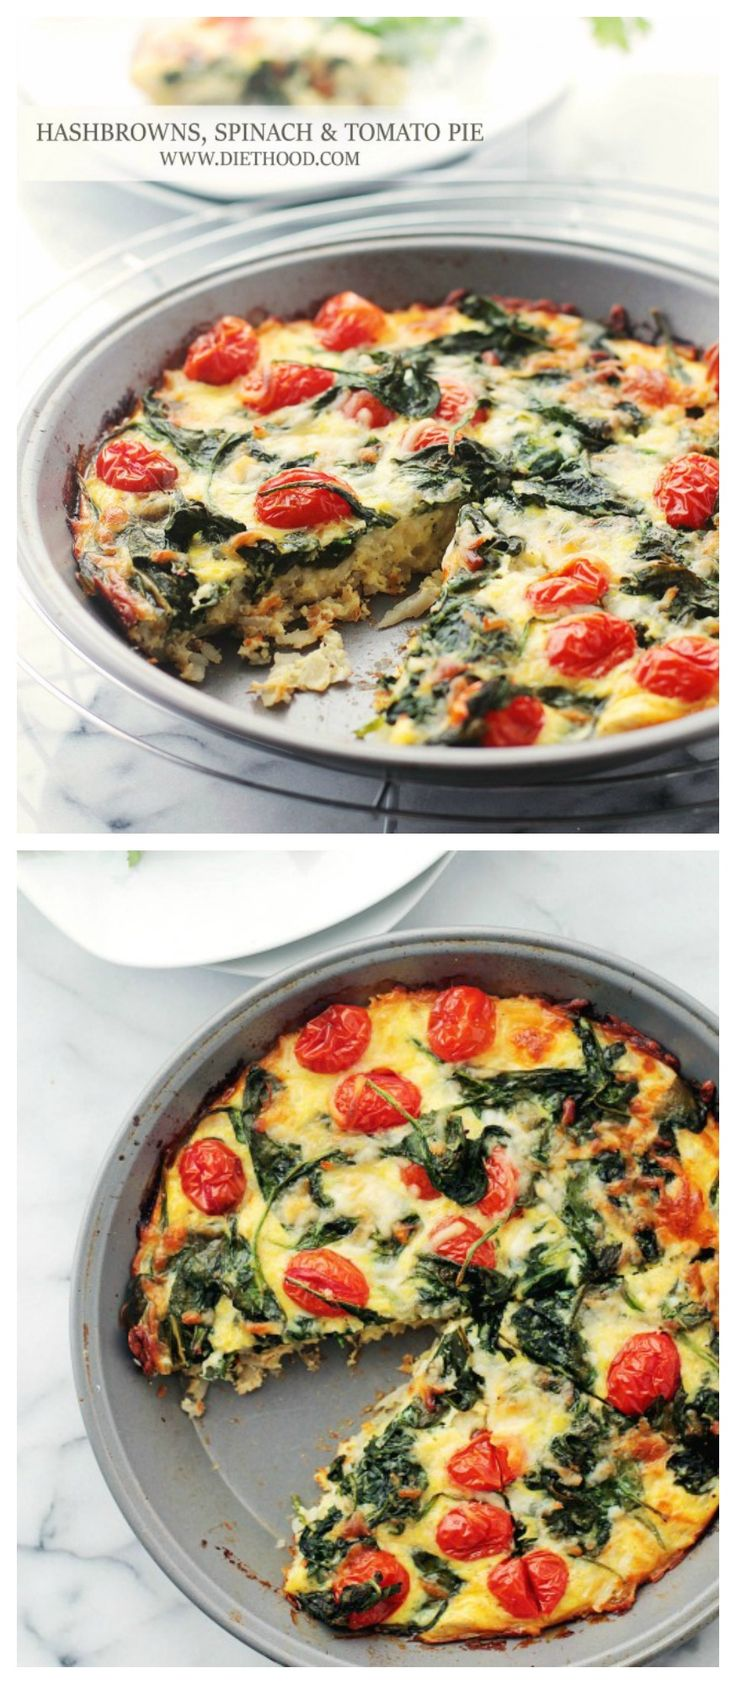 {USA} Hashbrowns, Spinach and Tomato Pie | www.diethood.com | Hashbrowns, Spinach and Tomato Pie is the perfect addition to your Easter Brunch Menu! | #recipe